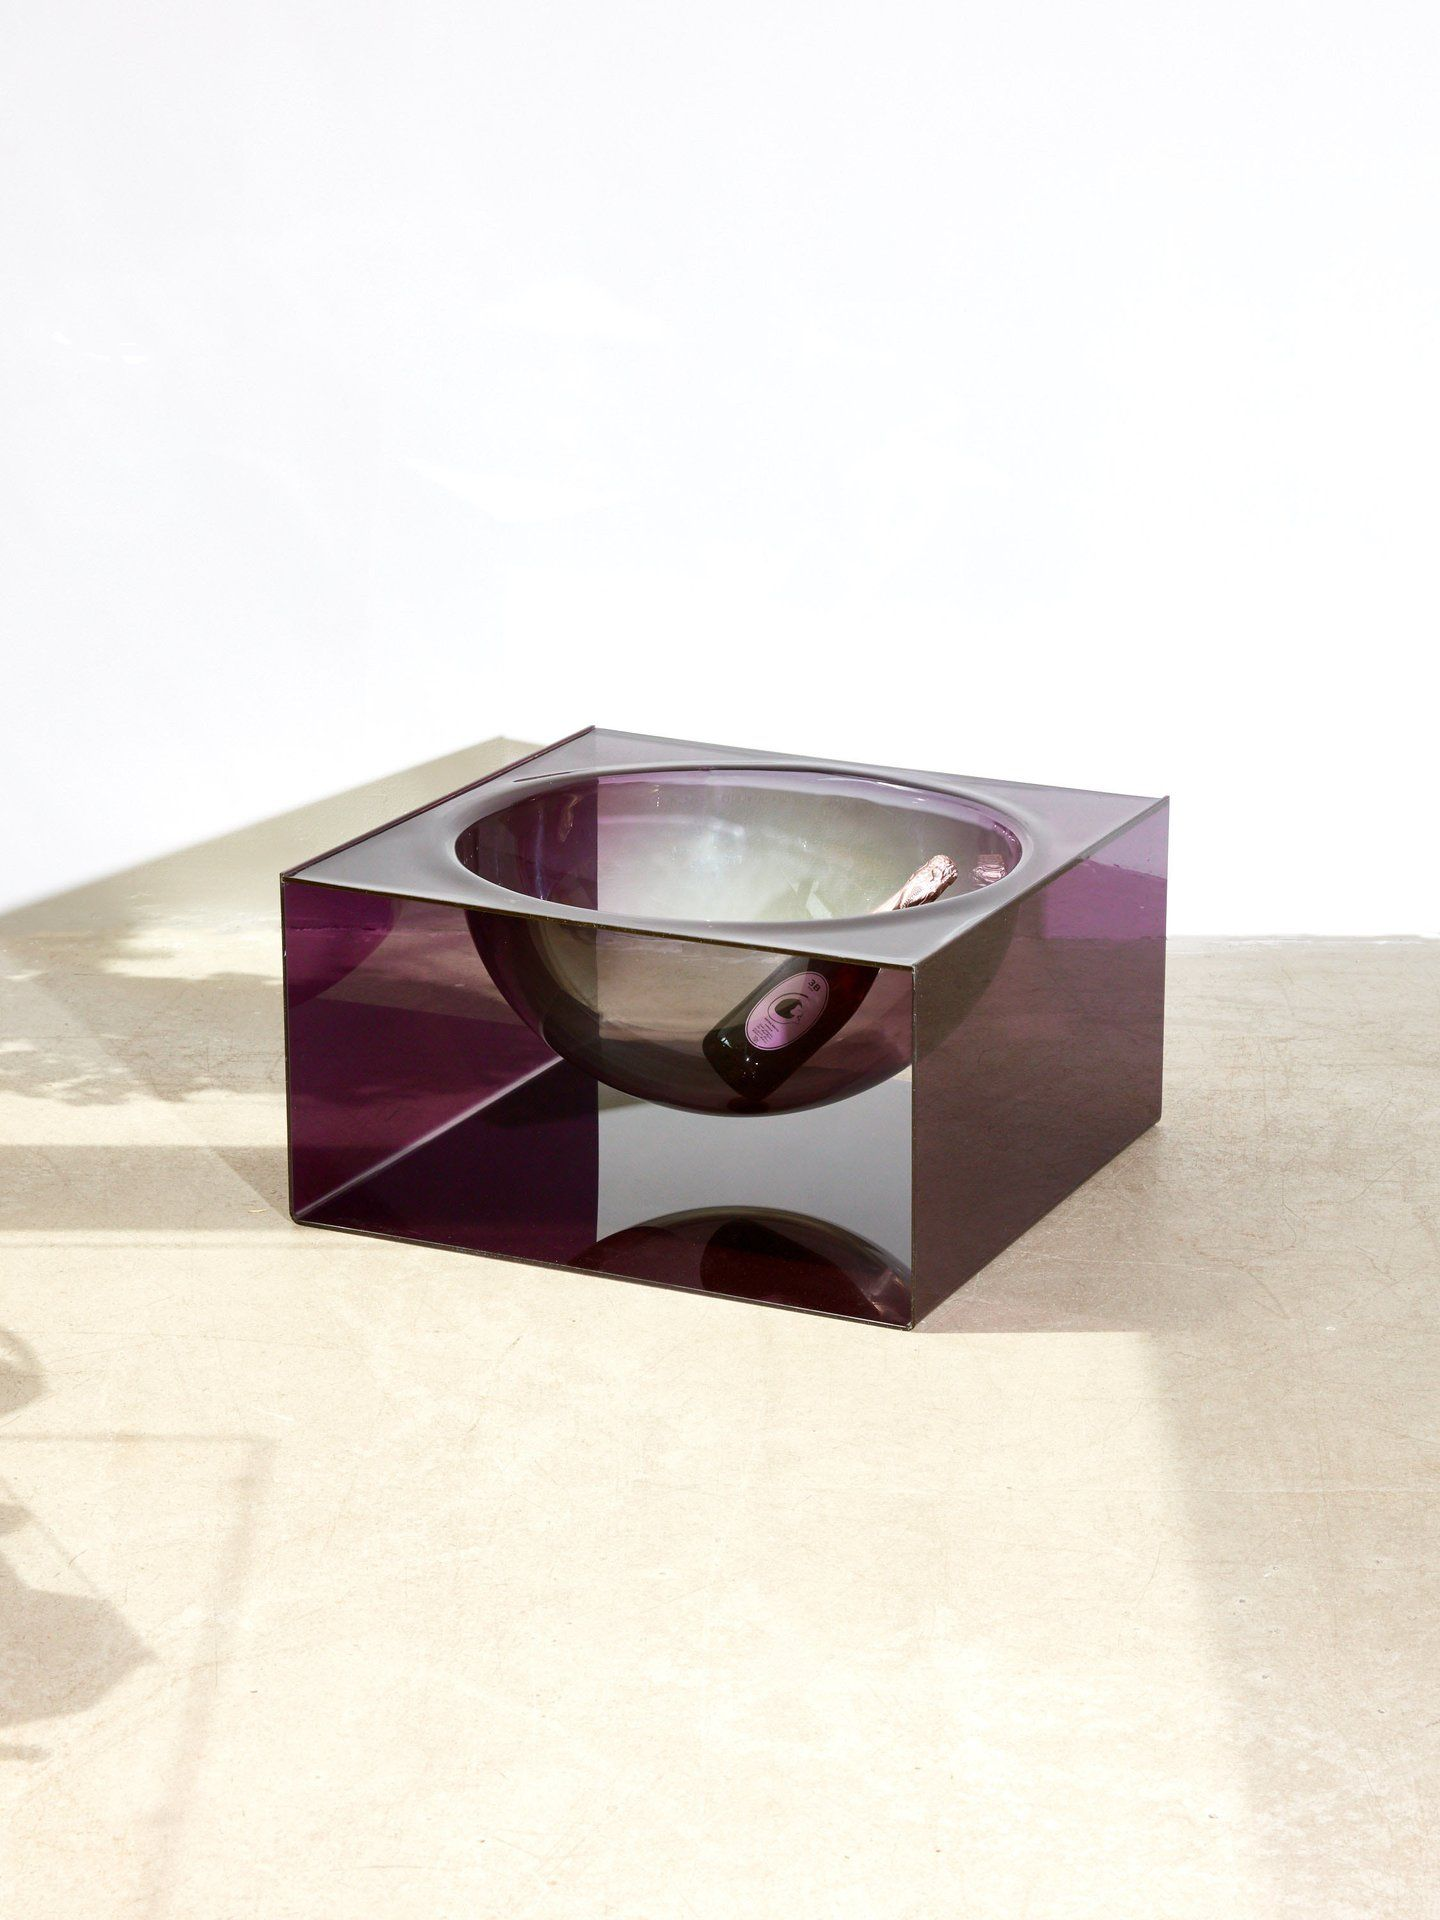 Acrylic Purple Table Coffee Table Purple Table Cool Coffee Tables [ 1920 x 1440 Pixel ]